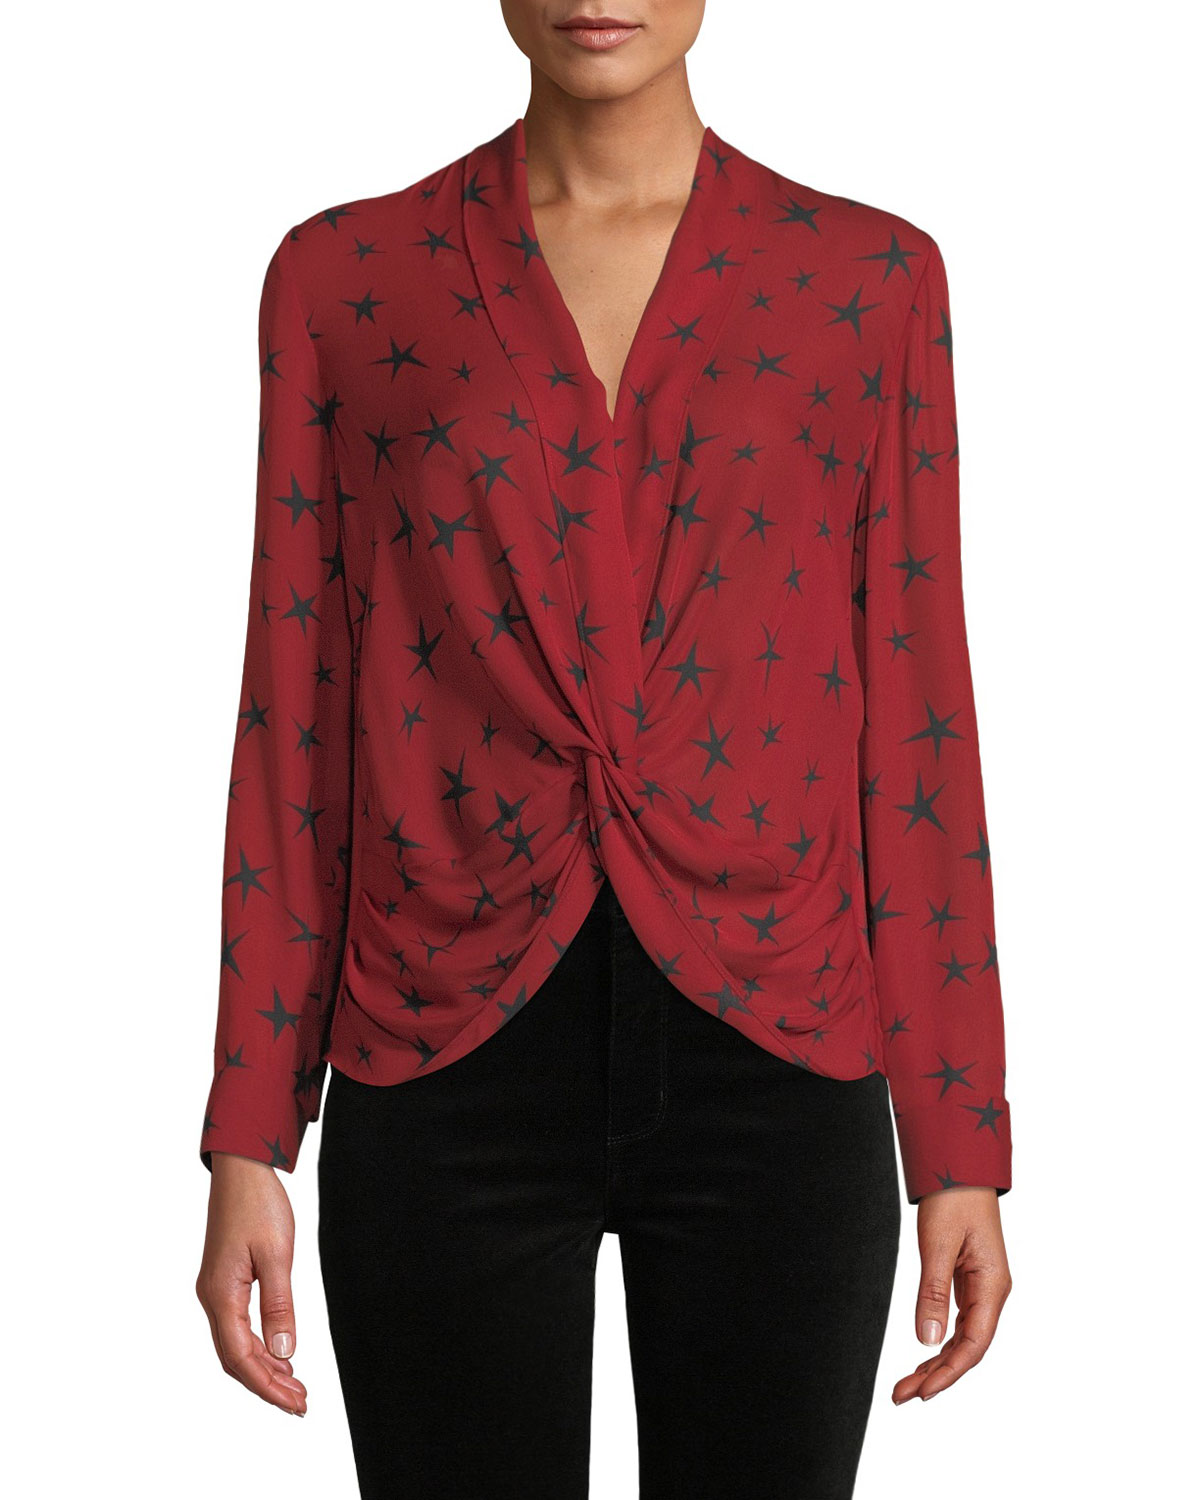 744e3a91f8651e L Agence Mariposa Star-Print Silk Crossover Blouse In Lacquer Red Black